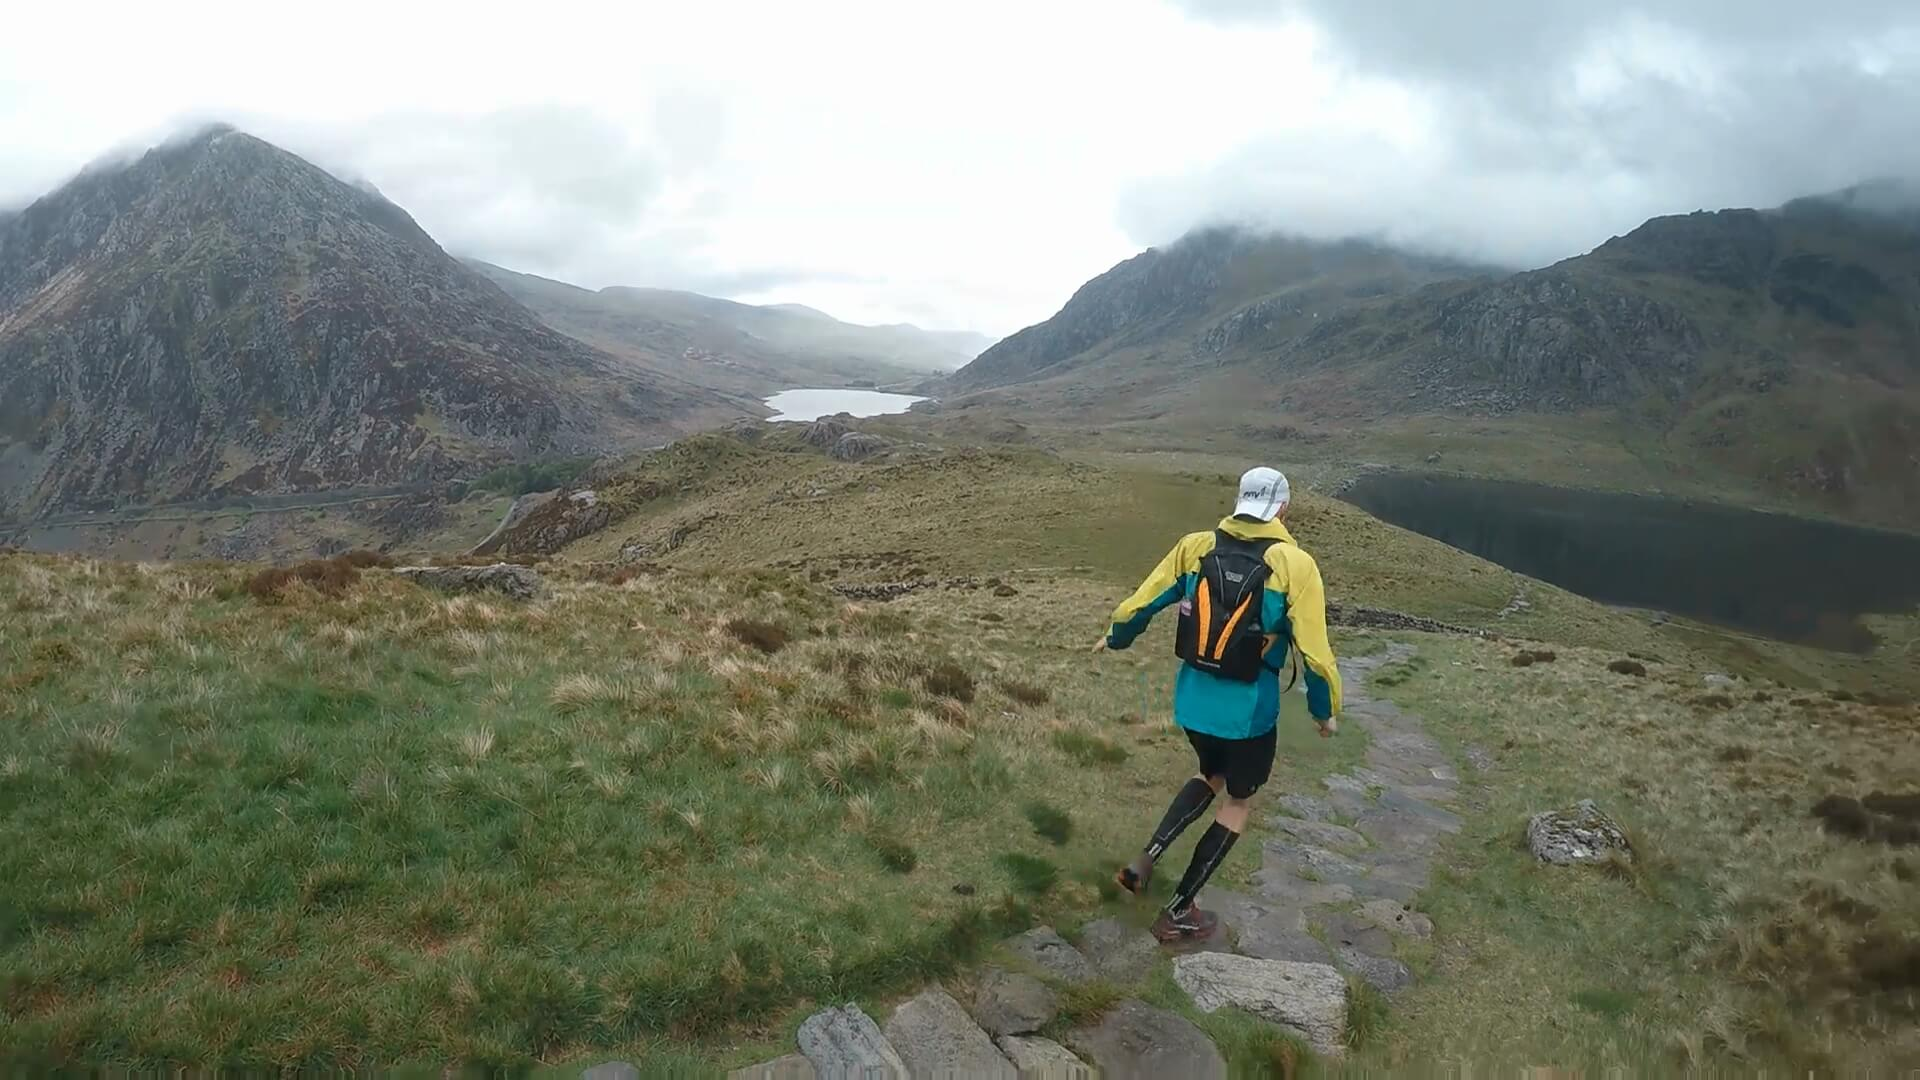 Training in Snowdonia for the Paddy Buckley Round, 100 km run